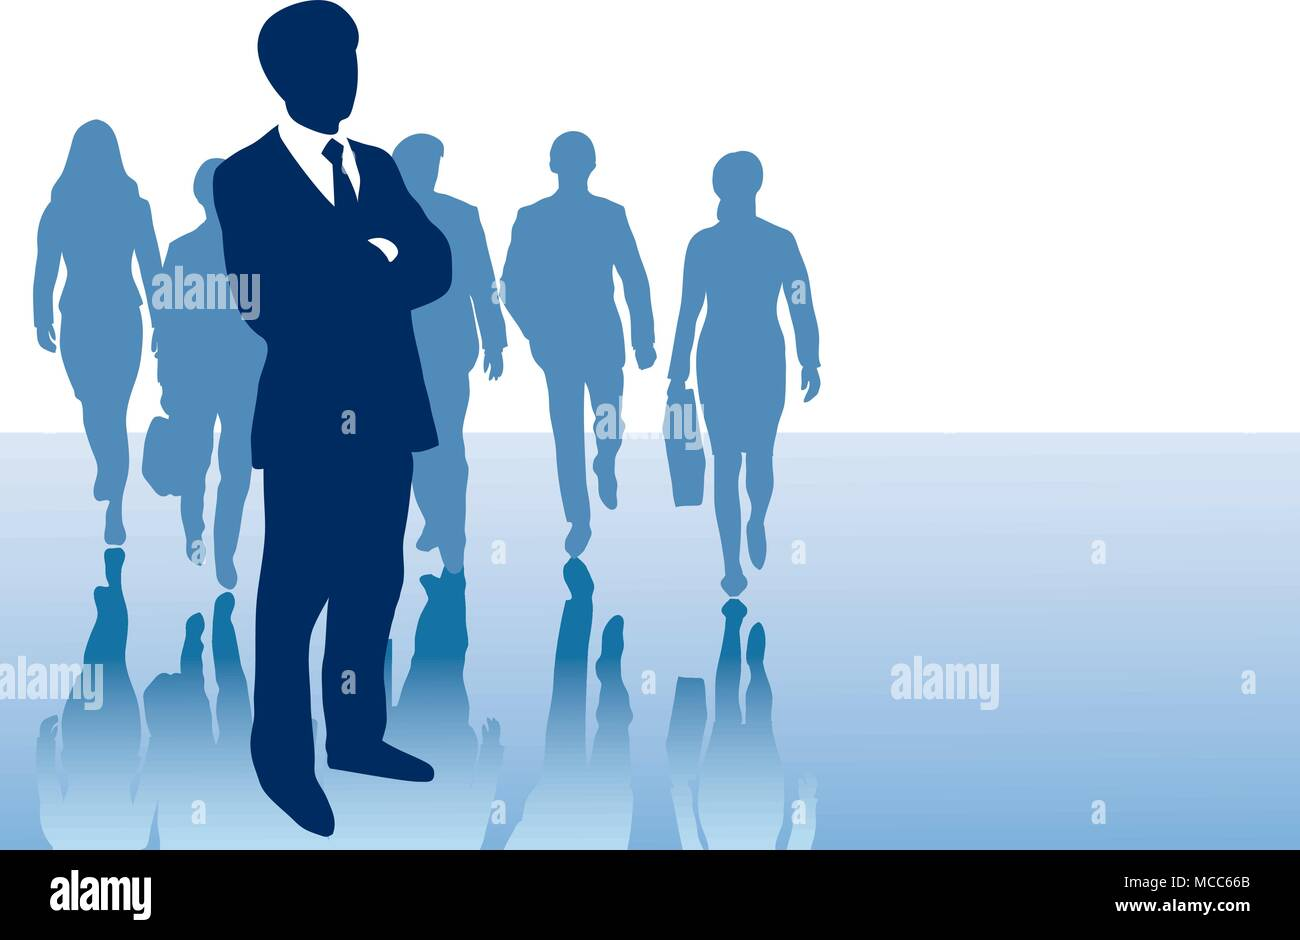 business presentation background for slides with silhouettes of